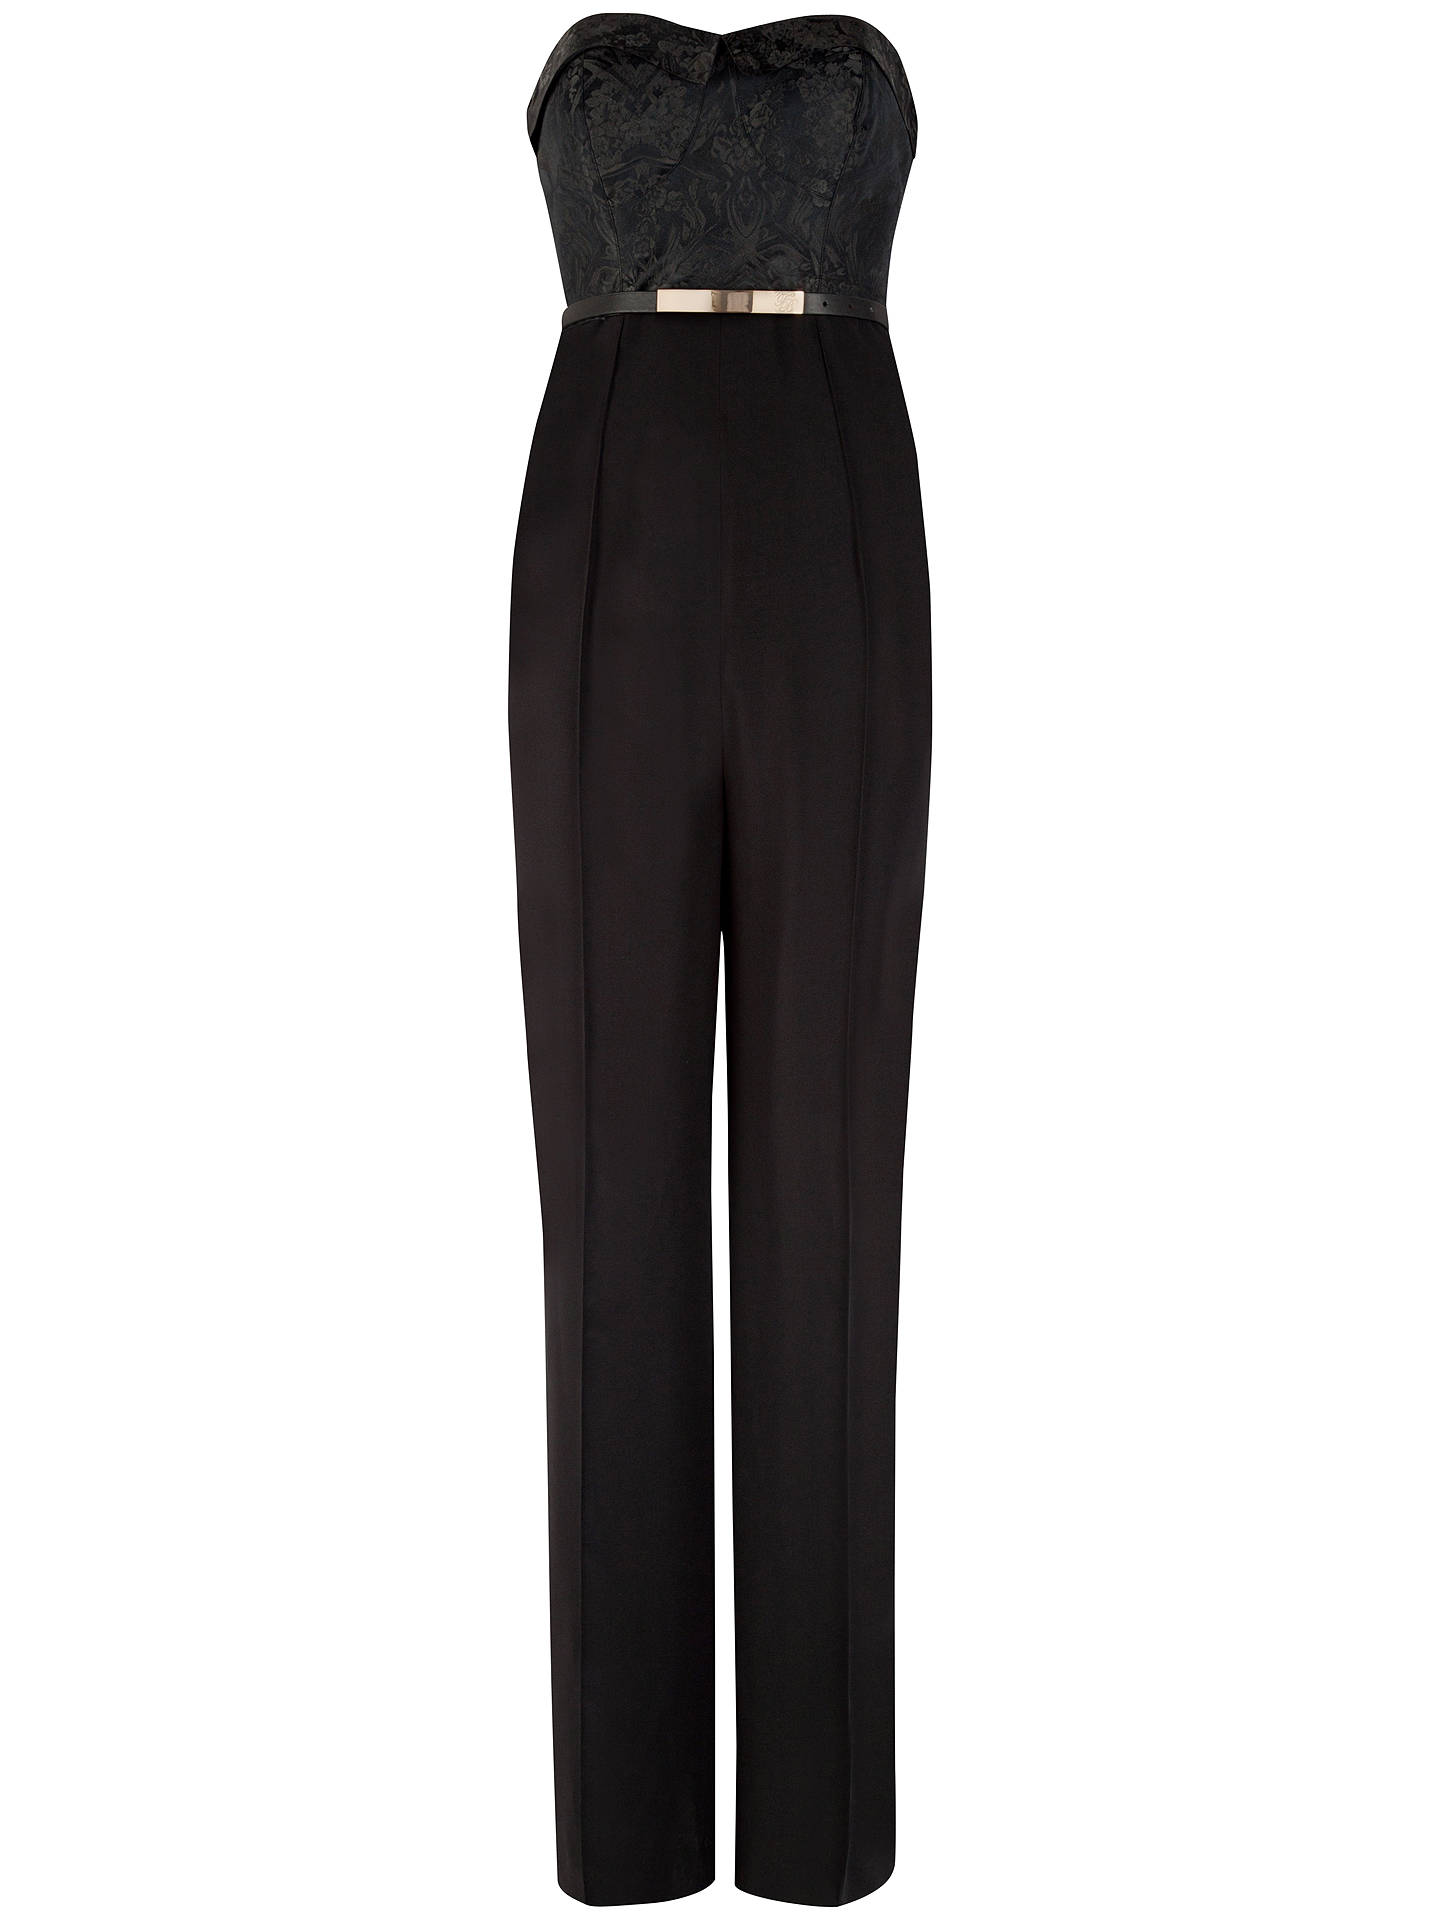 ab738a1d86c Buy Ted Baker Textured Bustier Jumpsuit